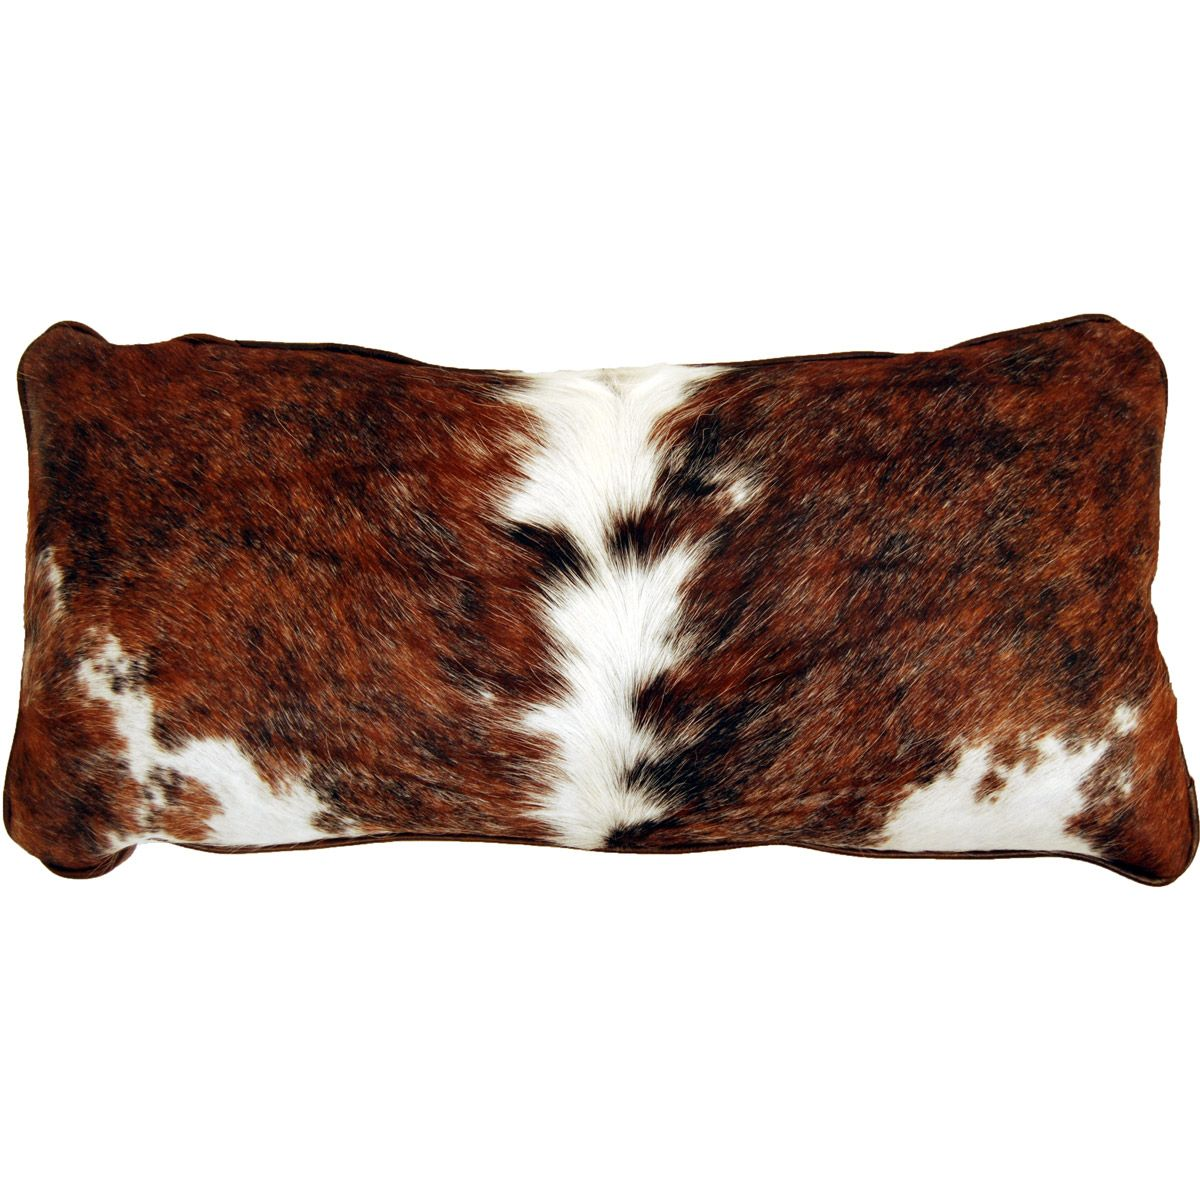 Cowhide Lumbar Pillow - Brindle with White Accents